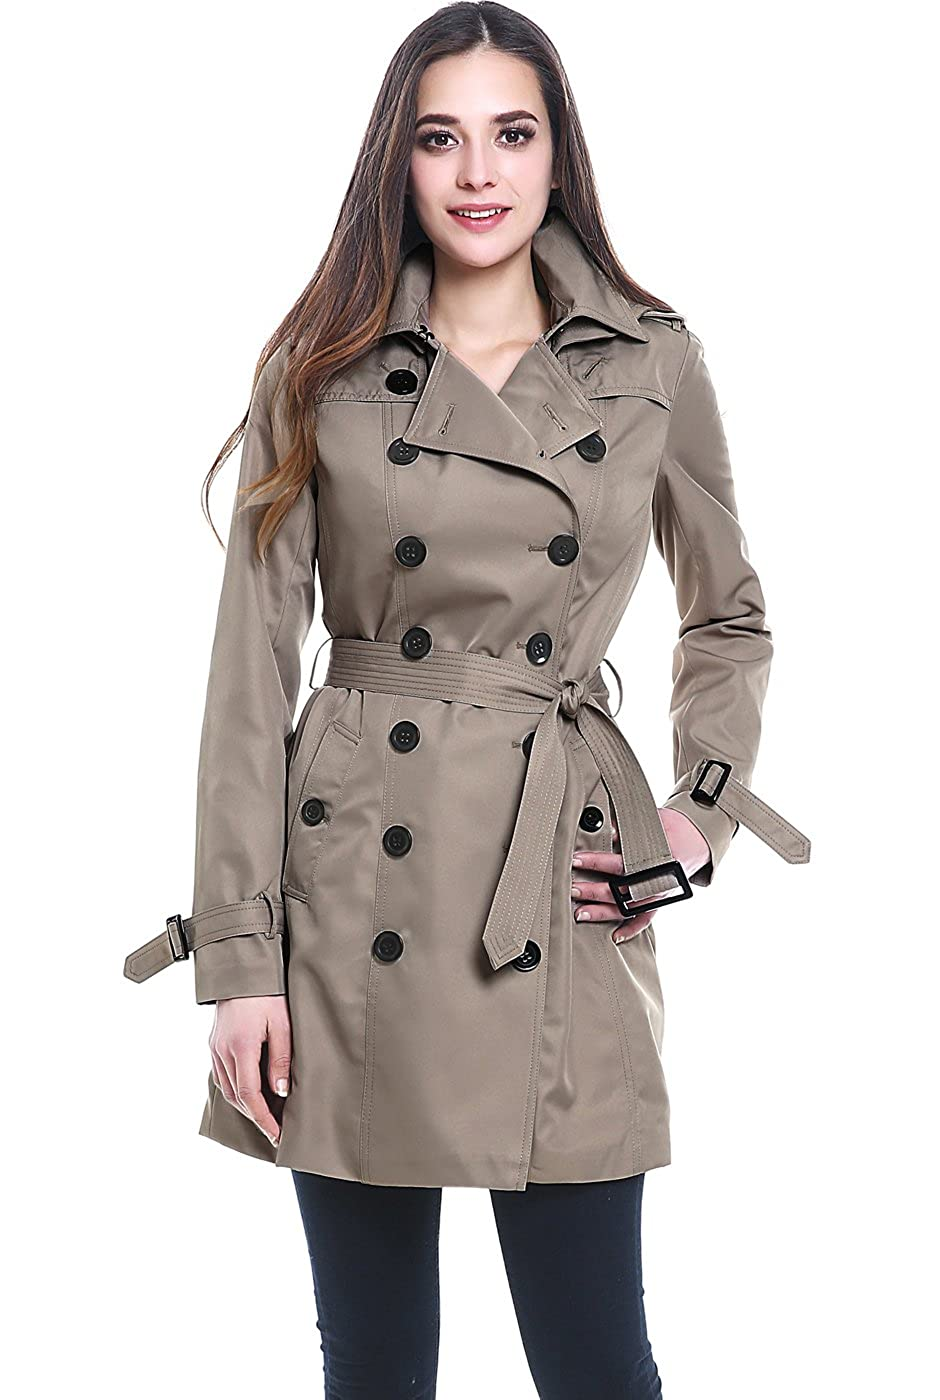 BGSD Womens Viv Waterproof Hooded Mid Length Trench Coat